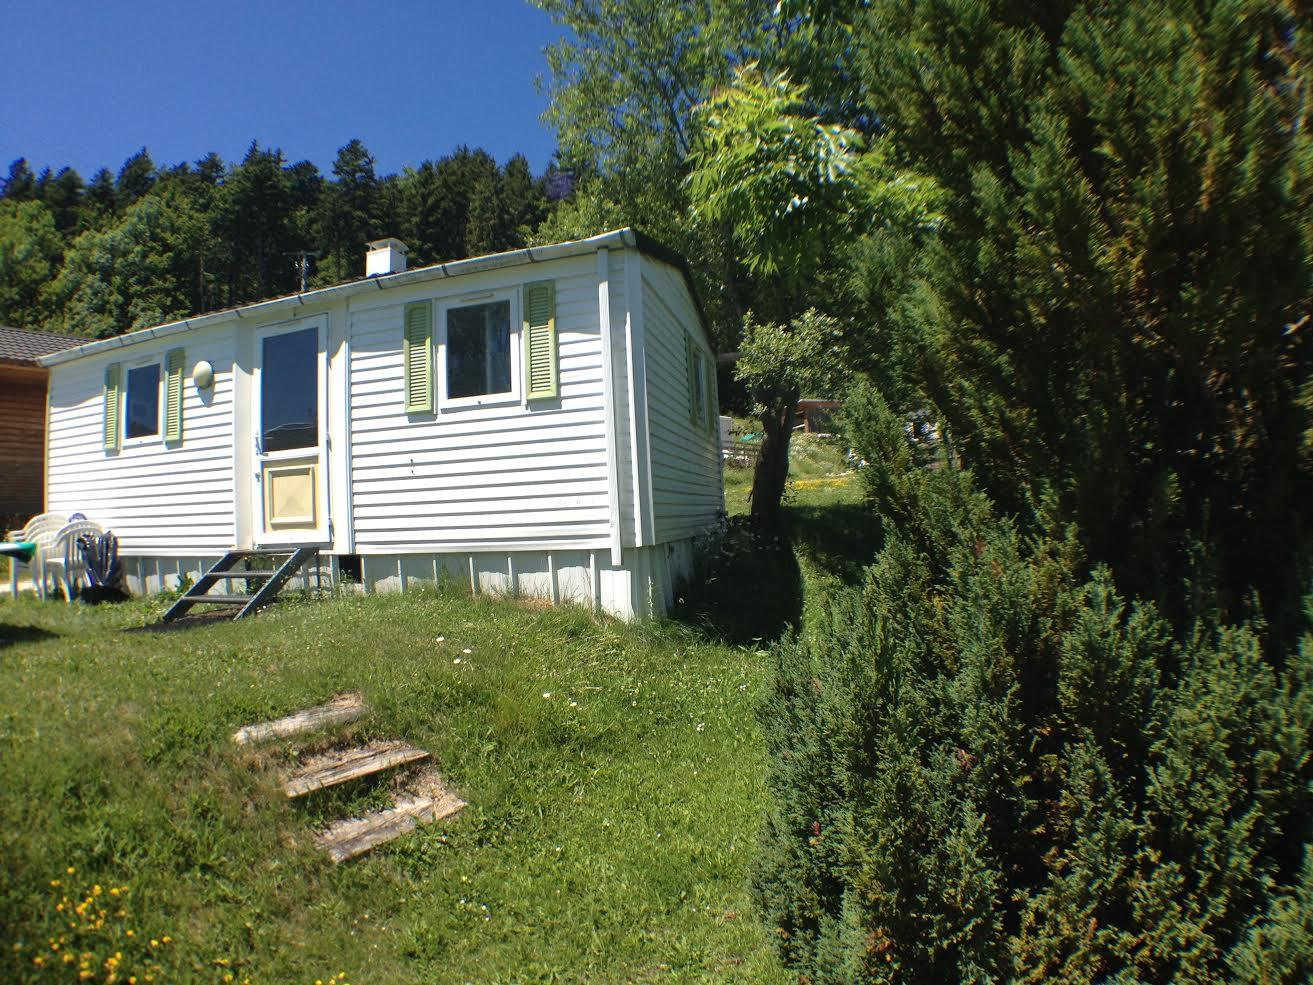 Accommodation - Mobile Home Edelweiss - Camping Les Eymes